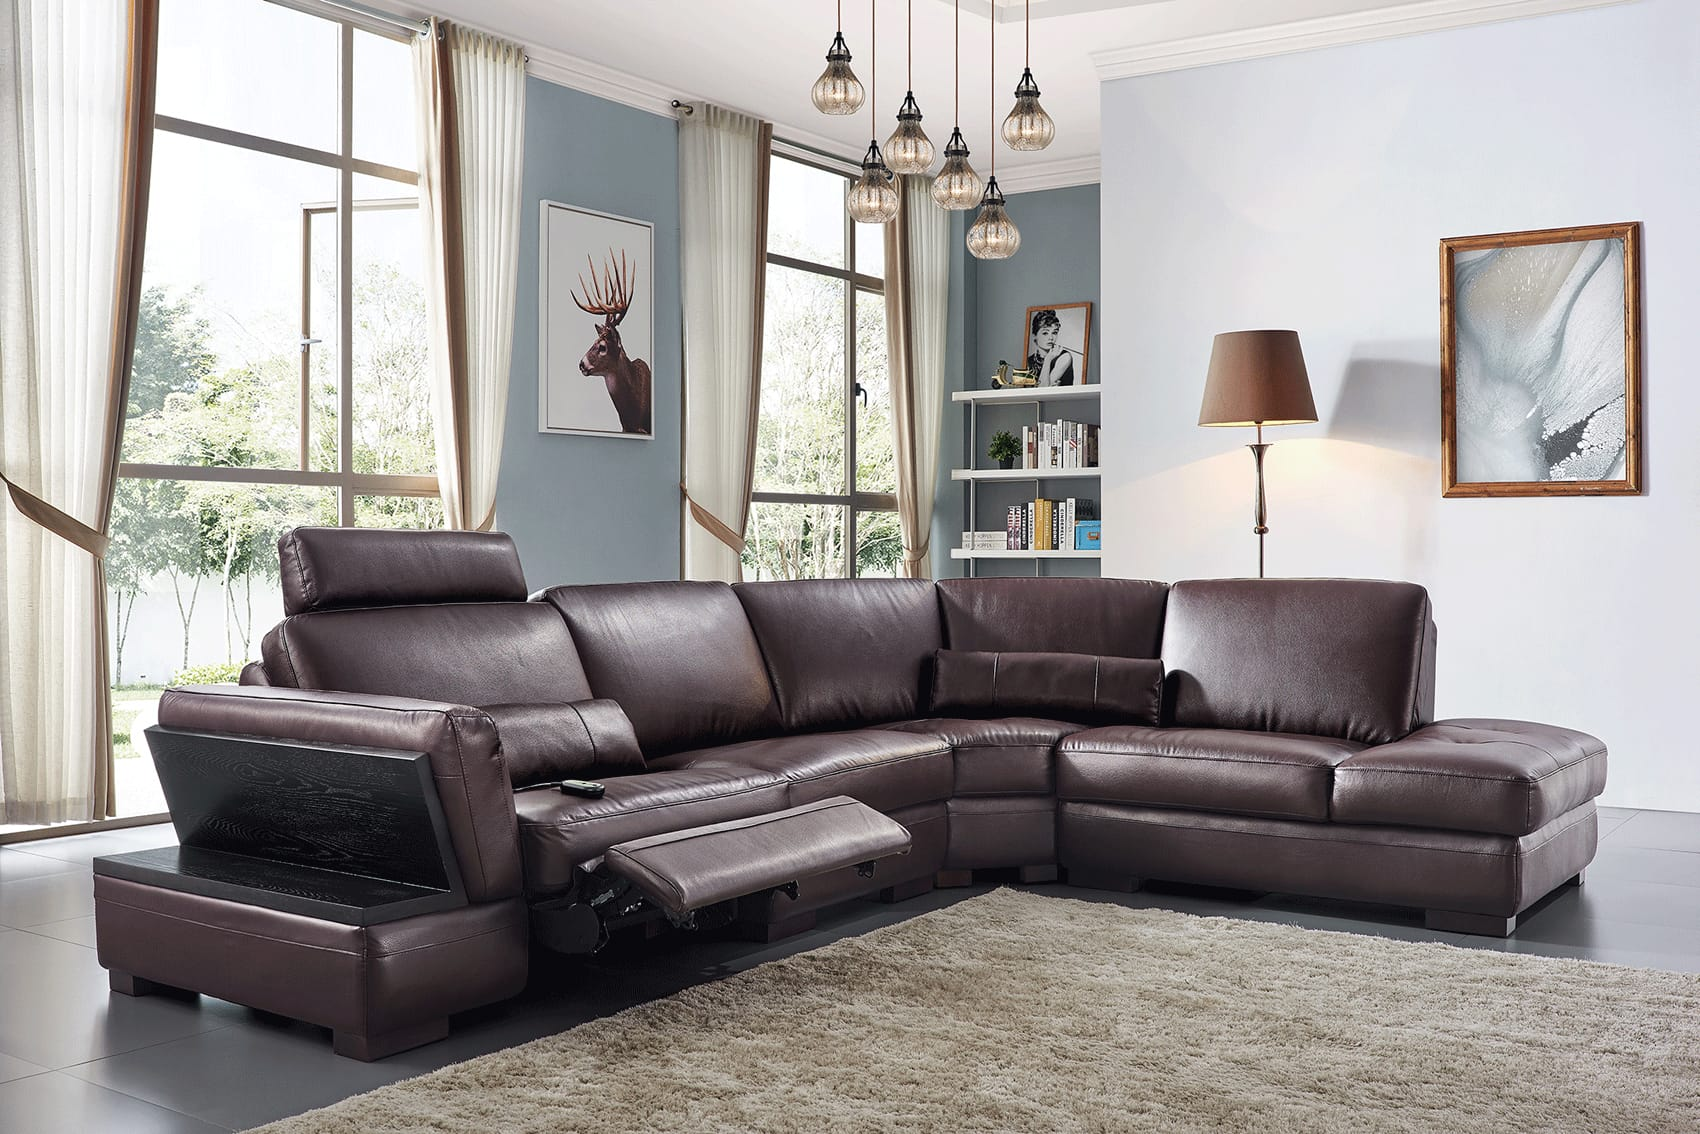 445 Dark Brown Leather Sectional Welectric Recliner By Esf